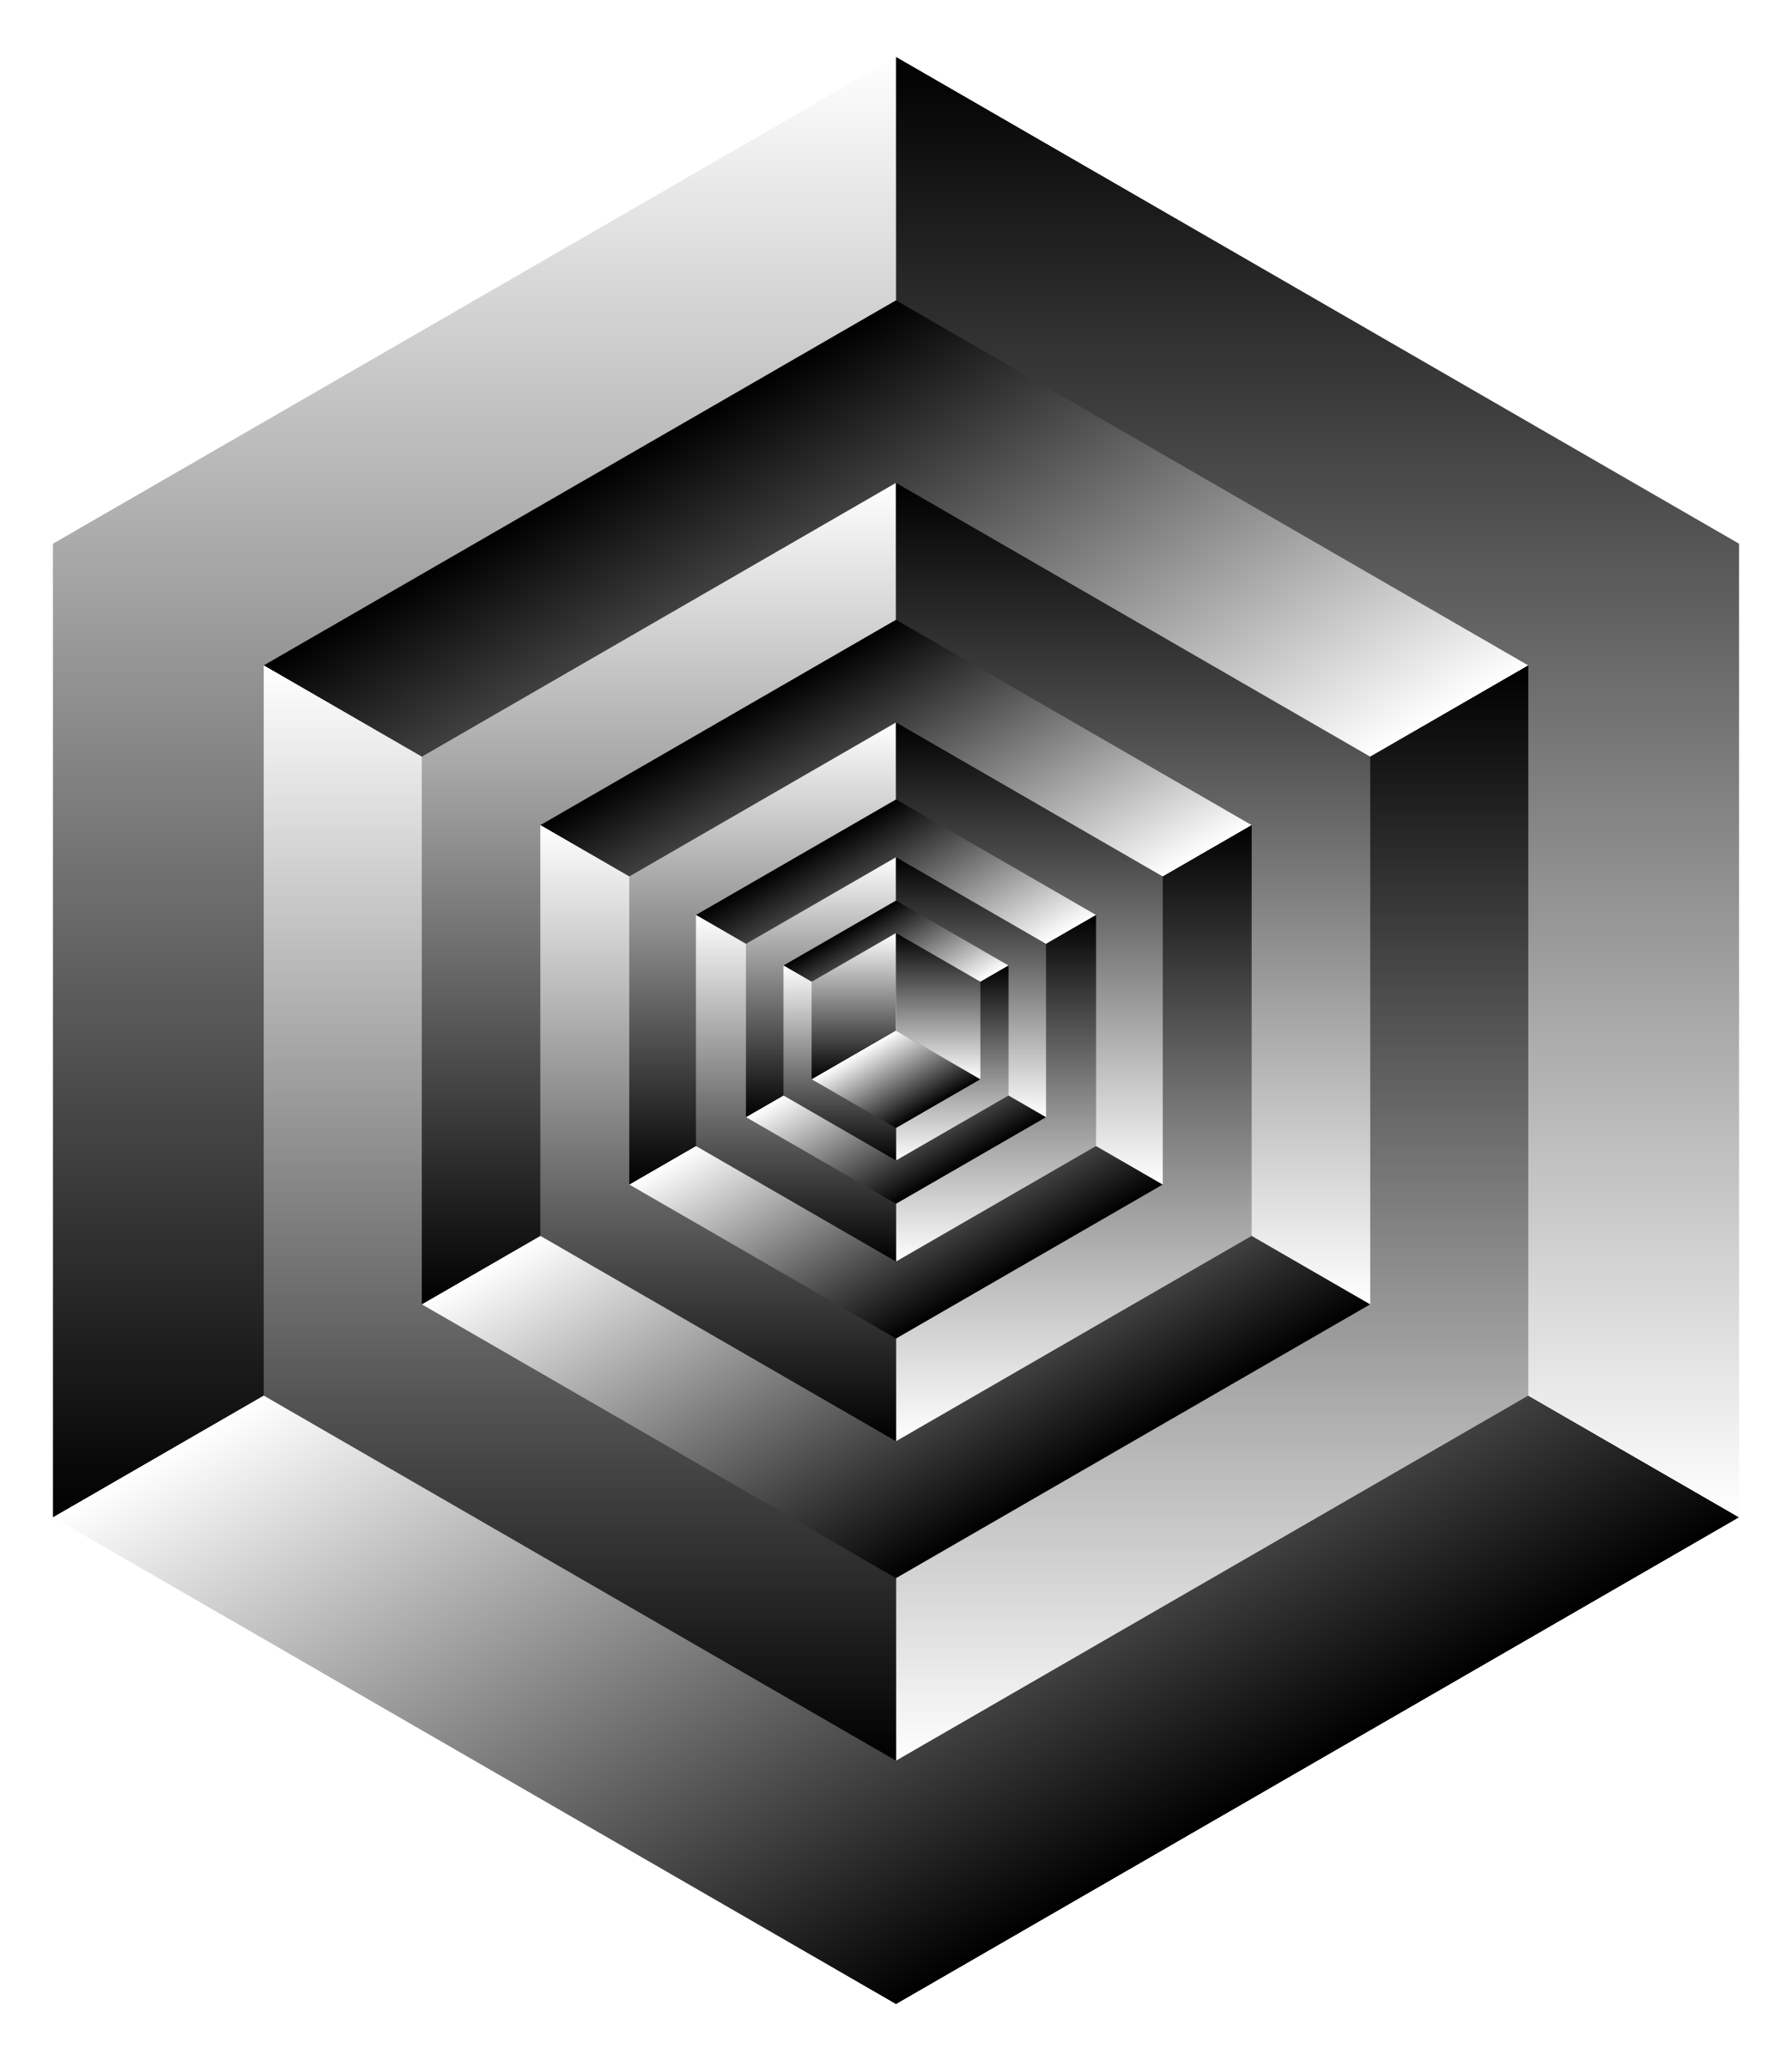 Isometric Cube Illusion by GDJ